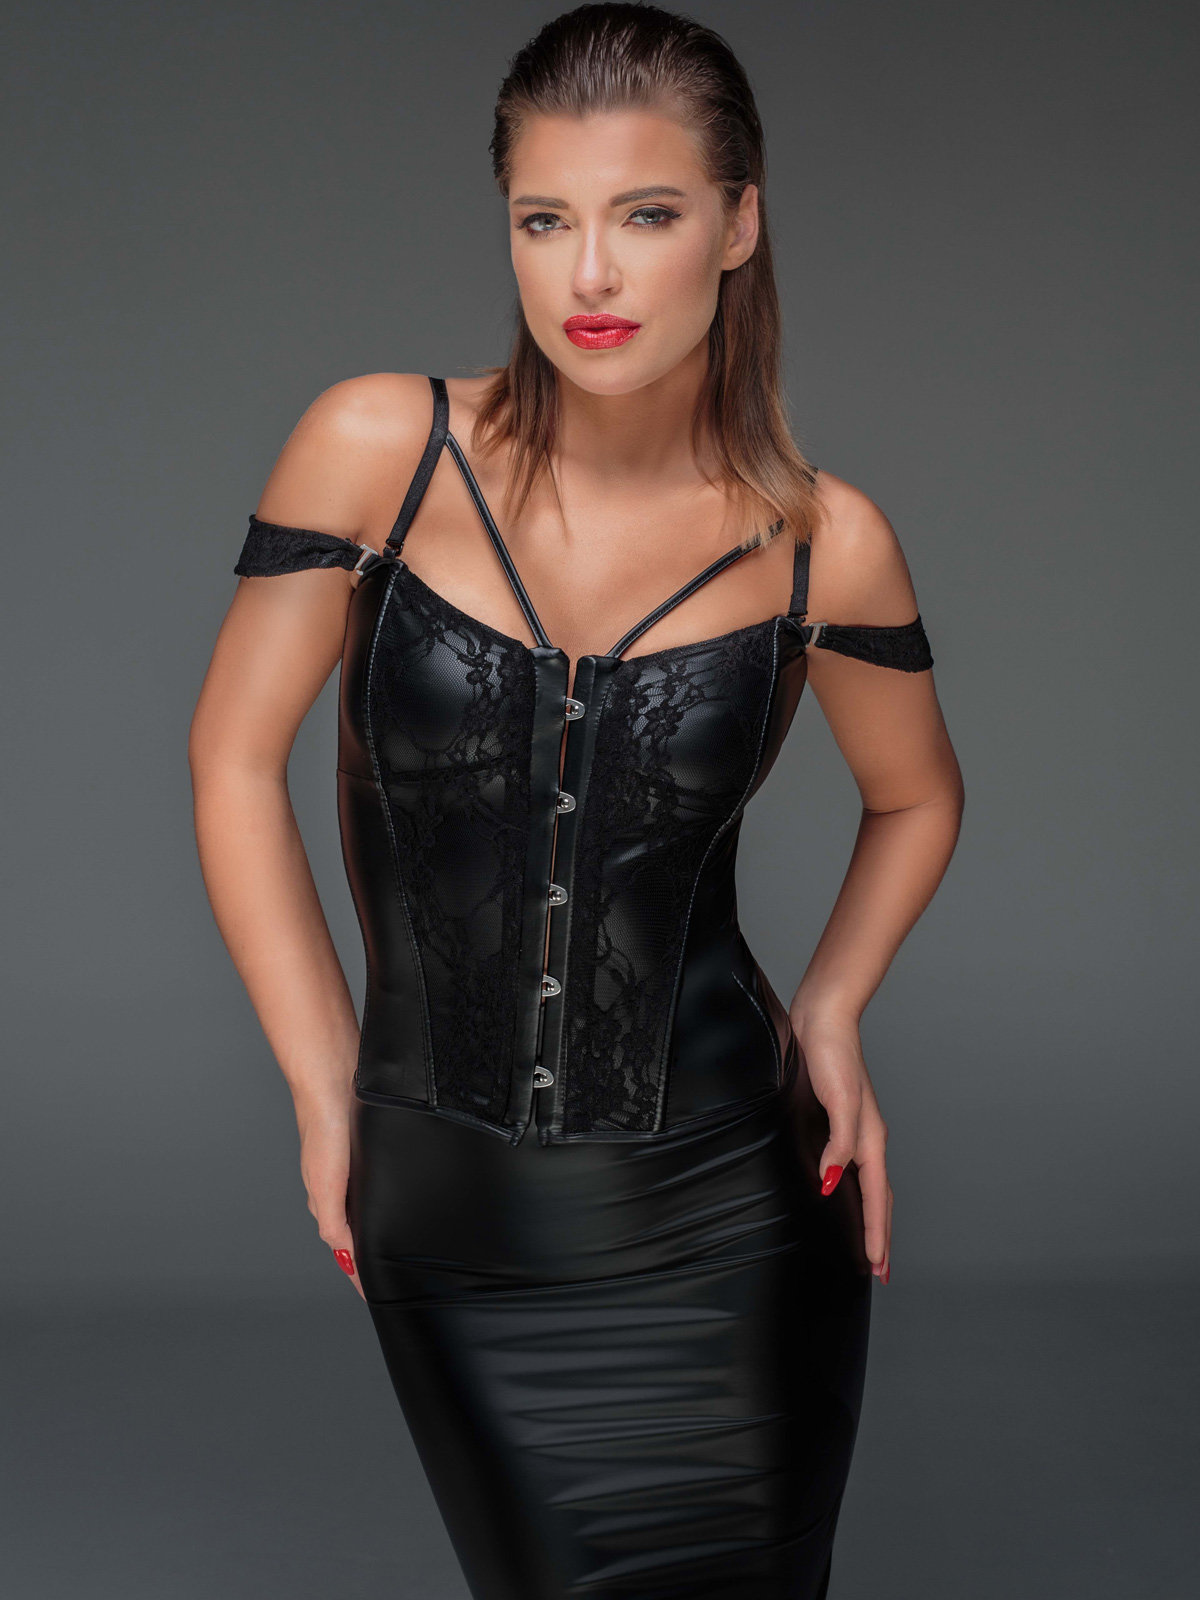 Noir Handmade Corset Powerwetlook and lace Negru